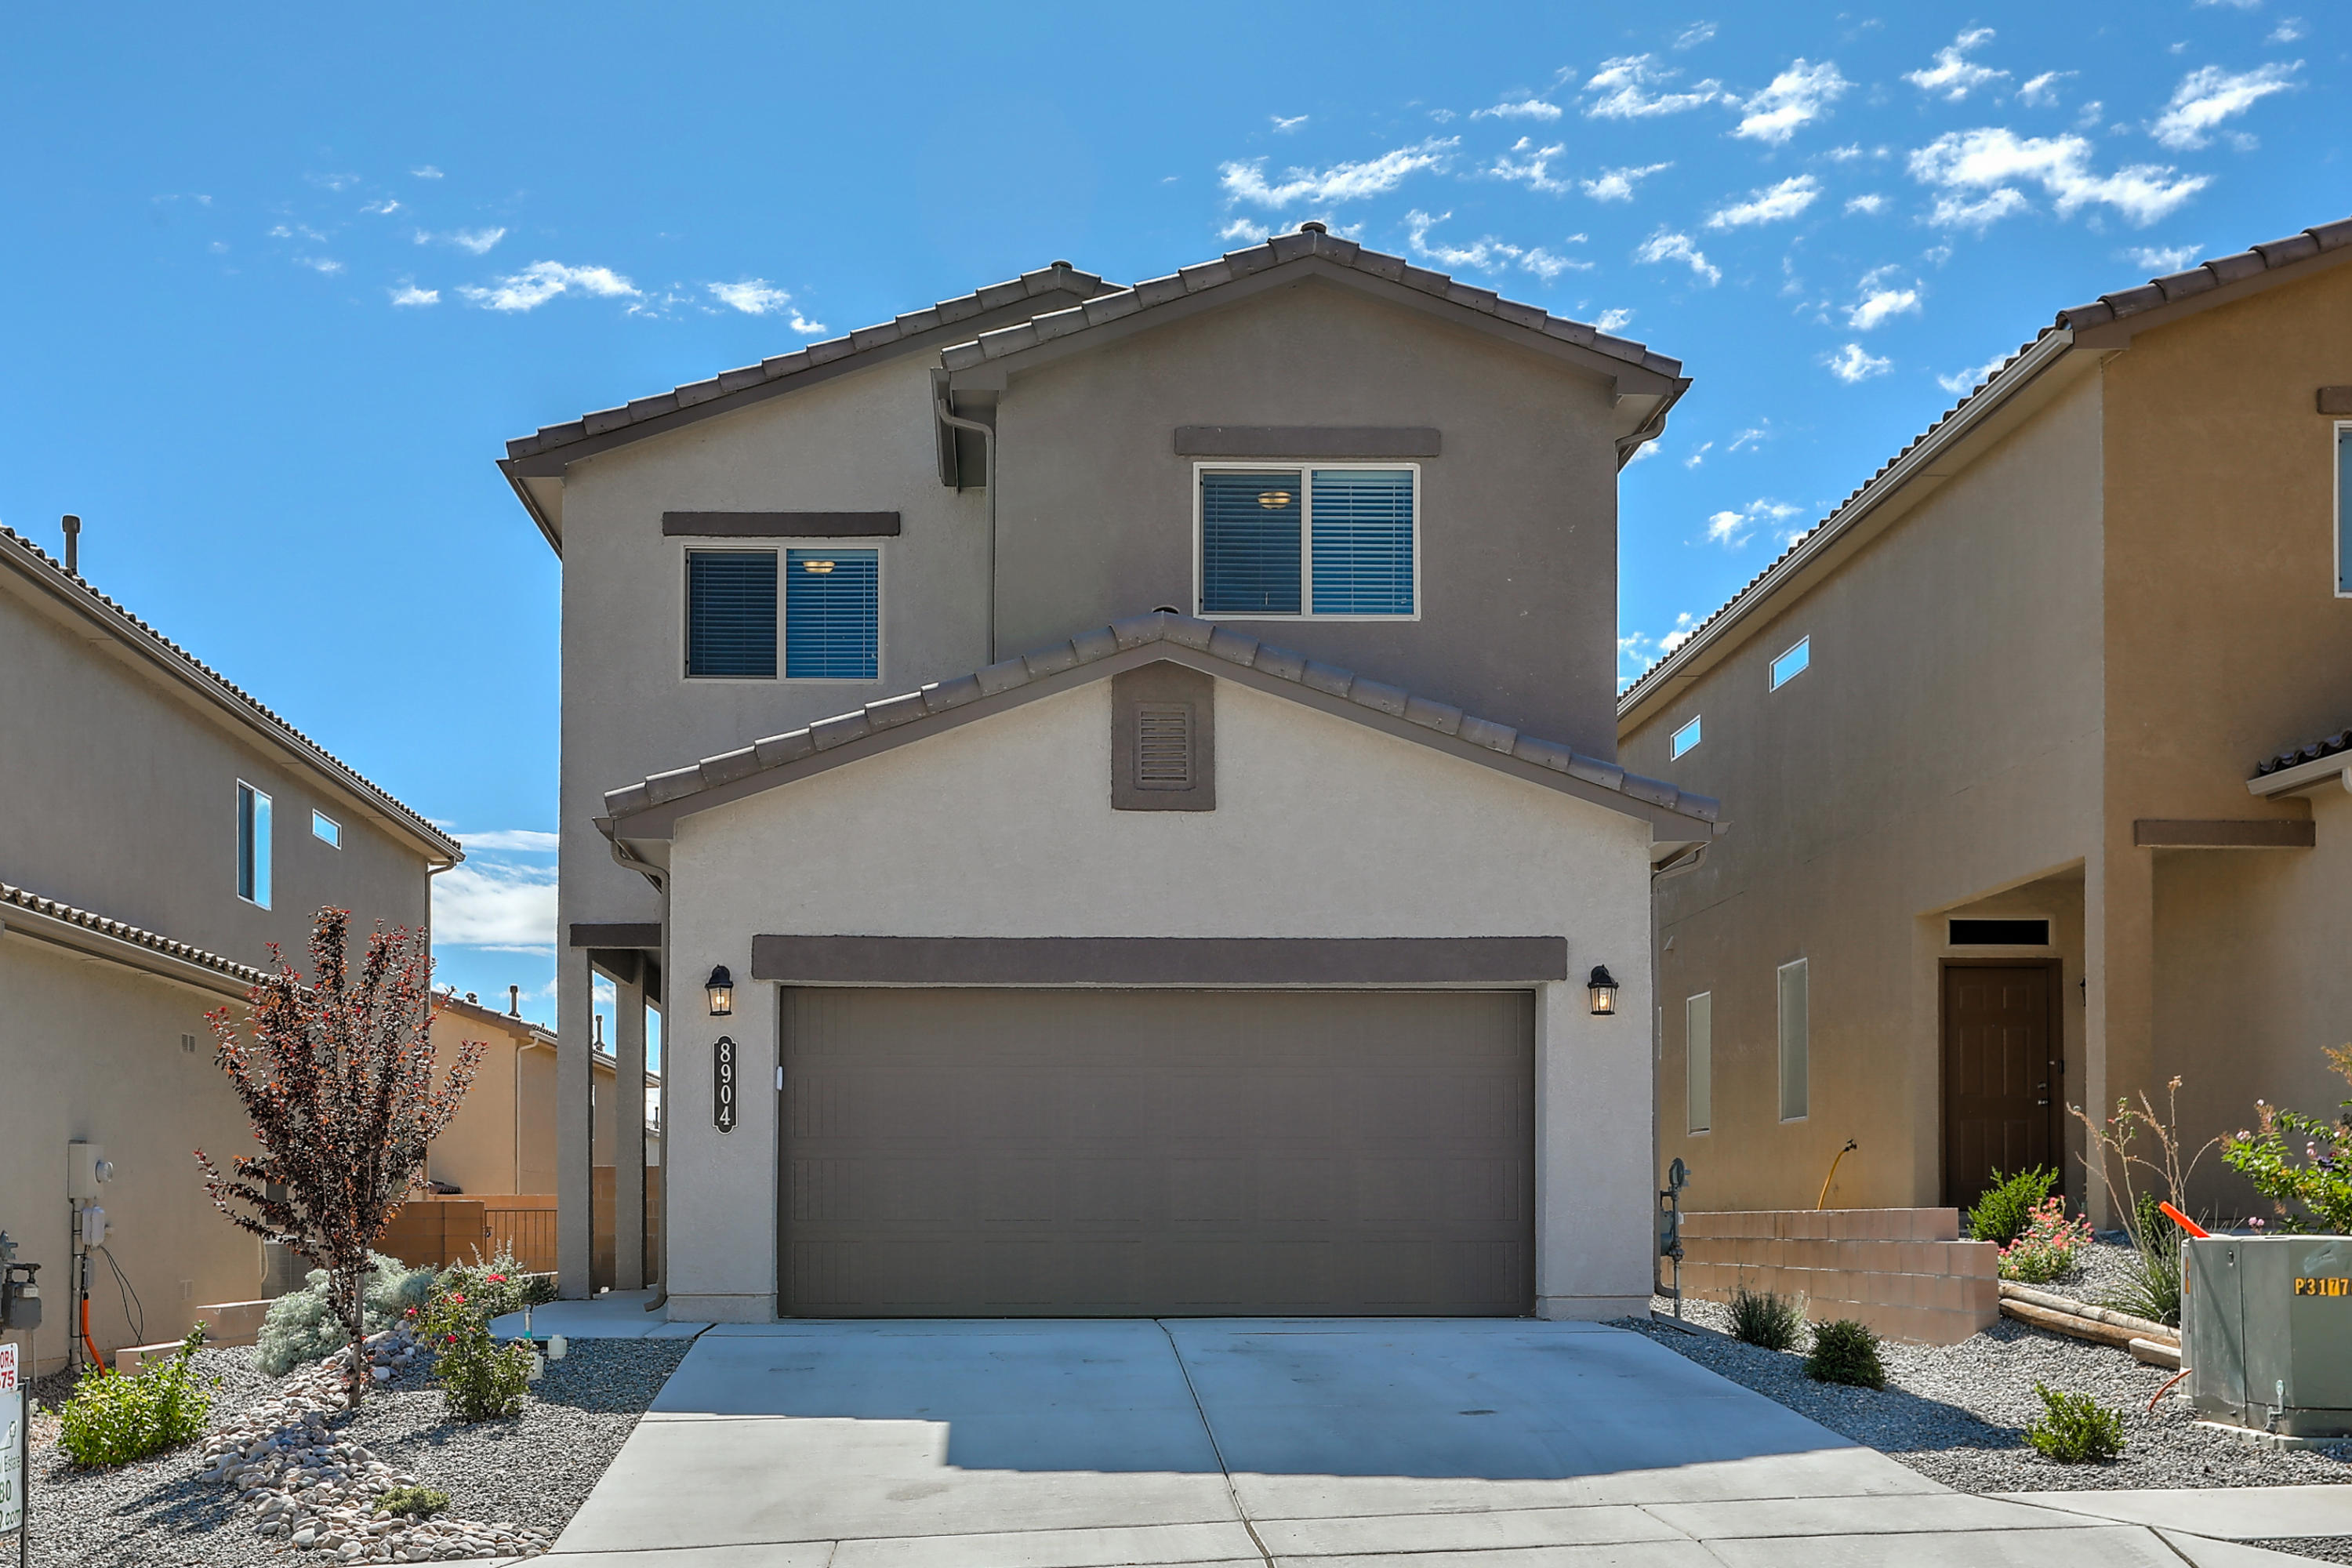 Northwest Albuquerque and Northwest Heights Homes for Sale -  Price Reduced,  8904 NW Zephyr Place